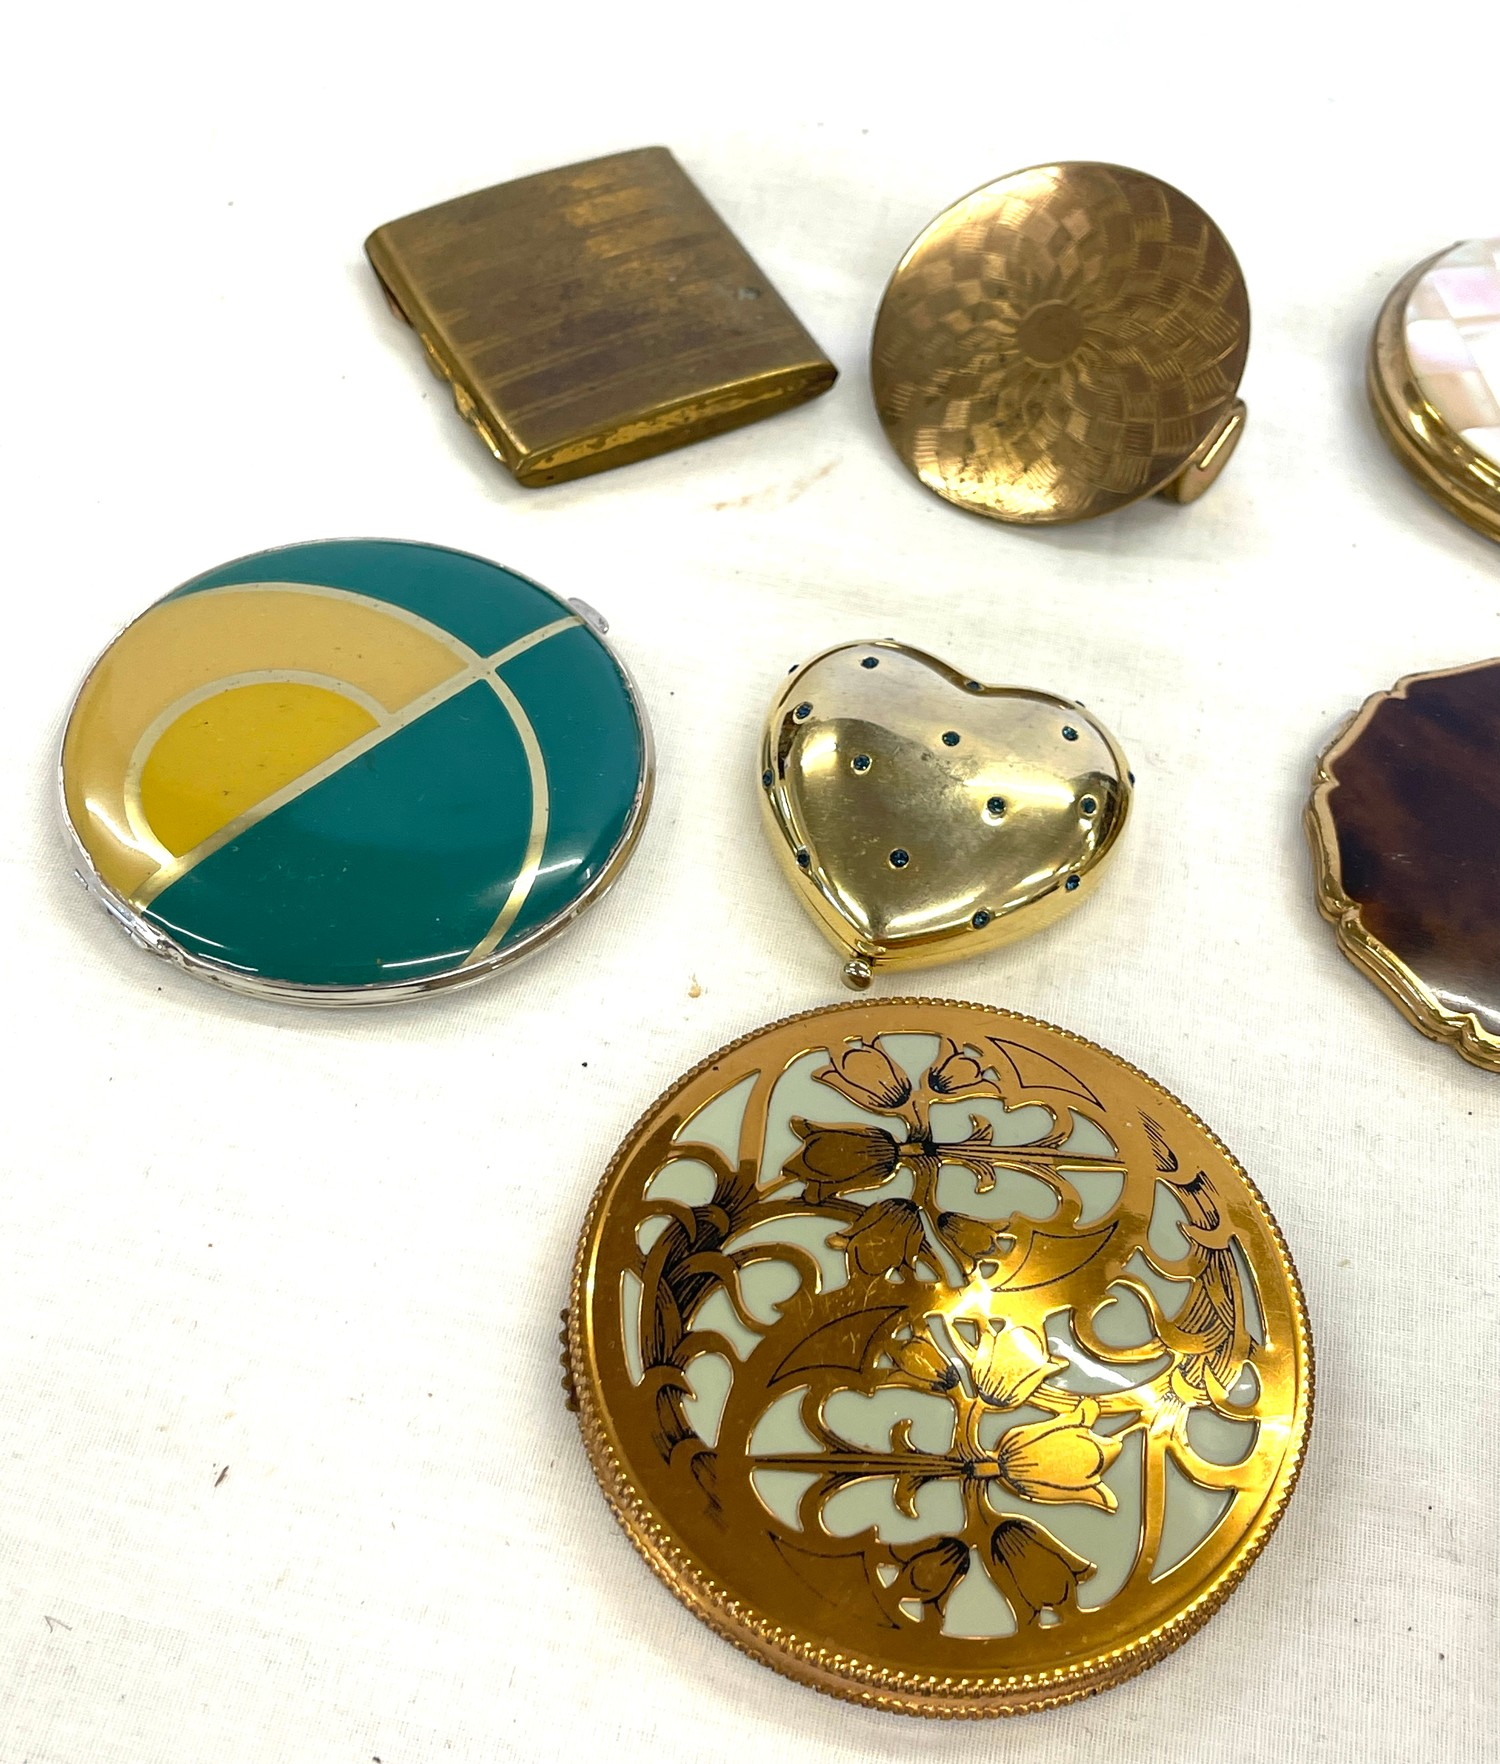 Selection of vintage ladies compacts - Image 2 of 3